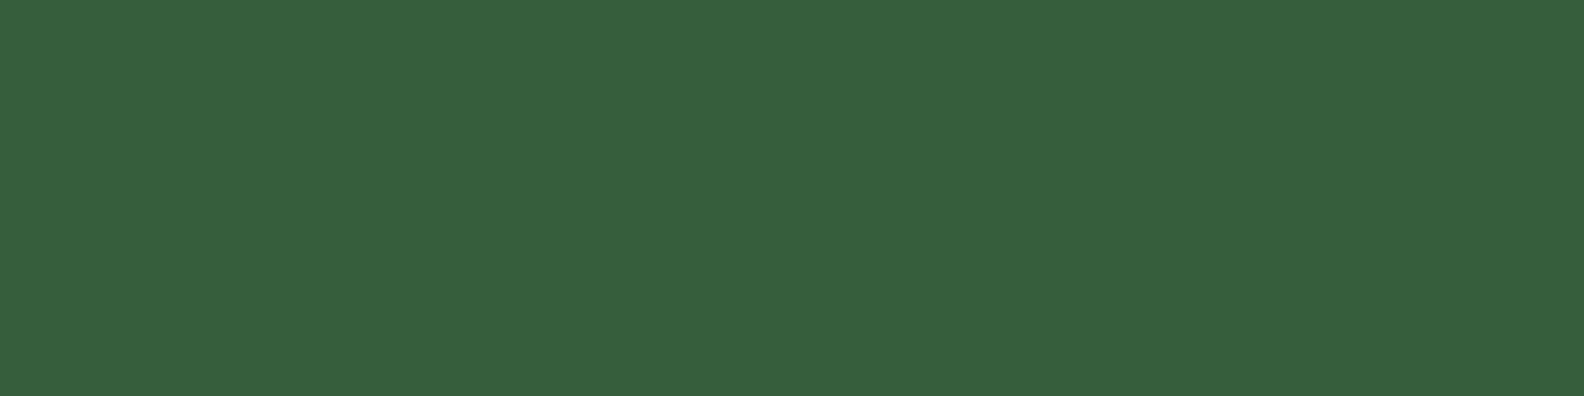 1584x396 Deep Moss Green Solid Color Background